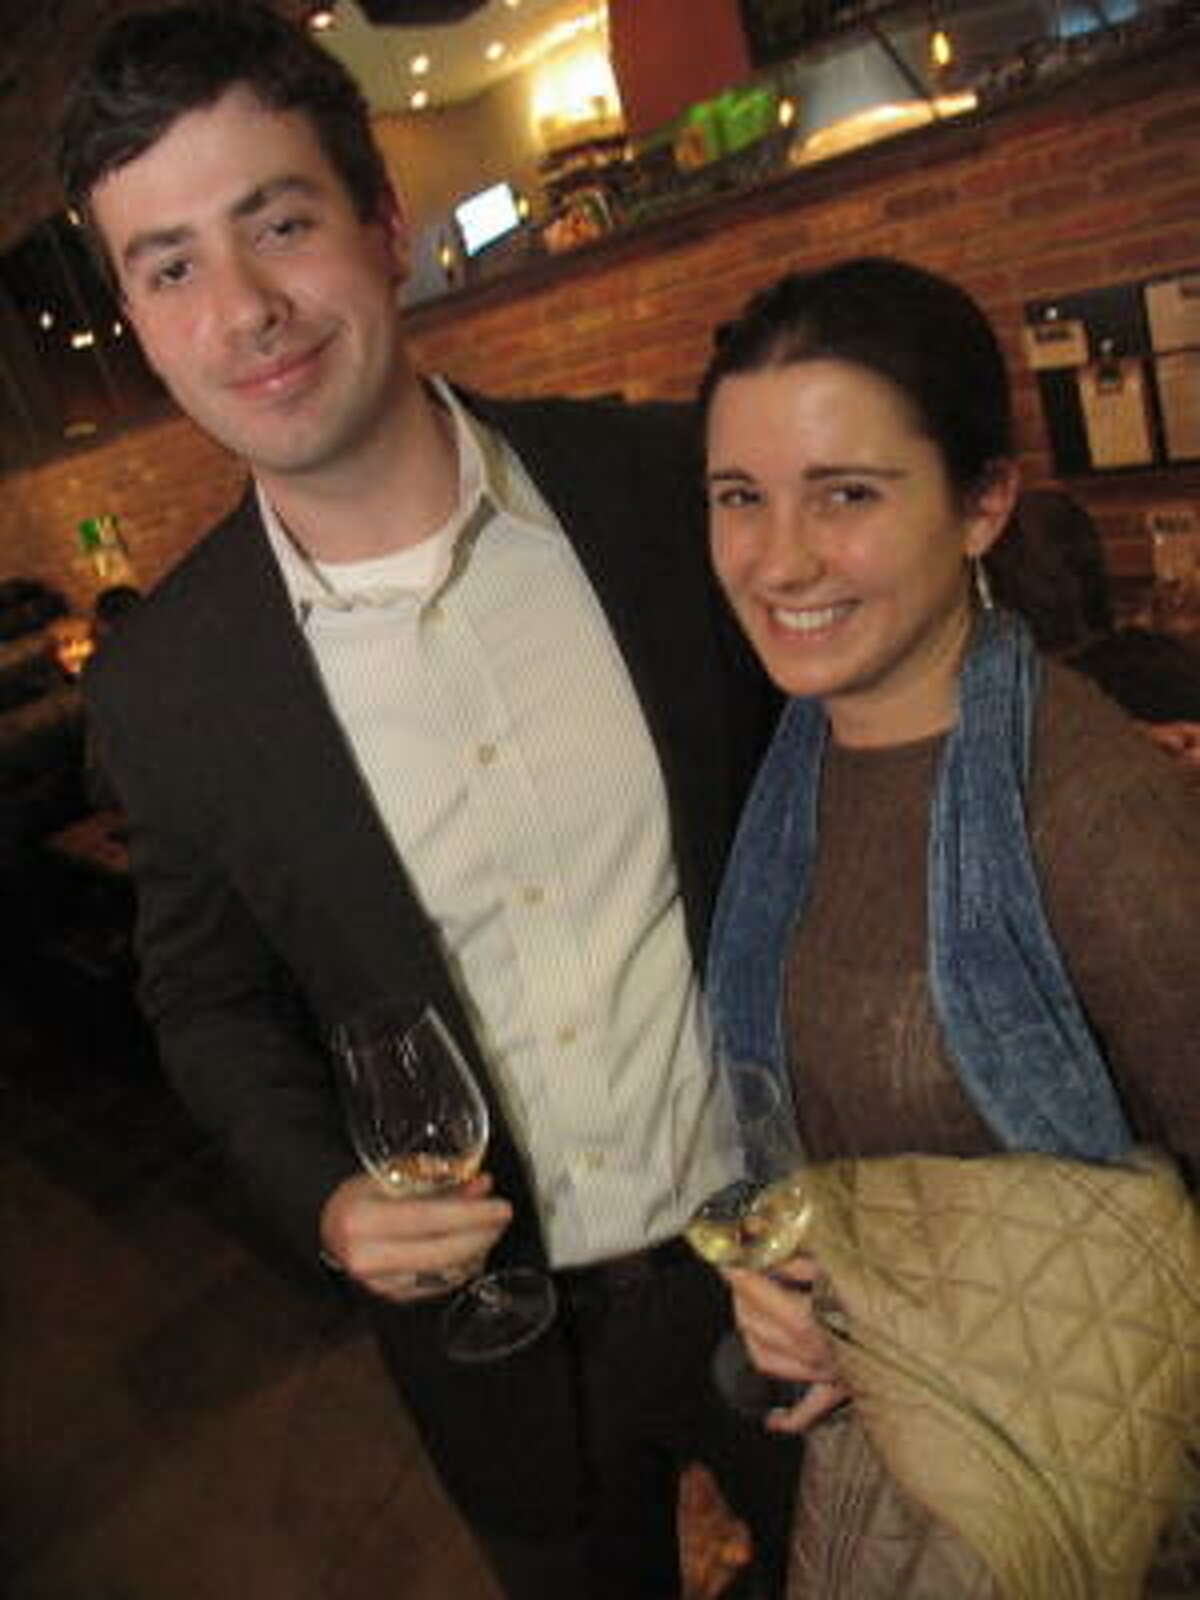 Andy Post, left, and Parker Gregg enjoyed some white wine at Max's Wine Dive, 4720 Washington Ave.